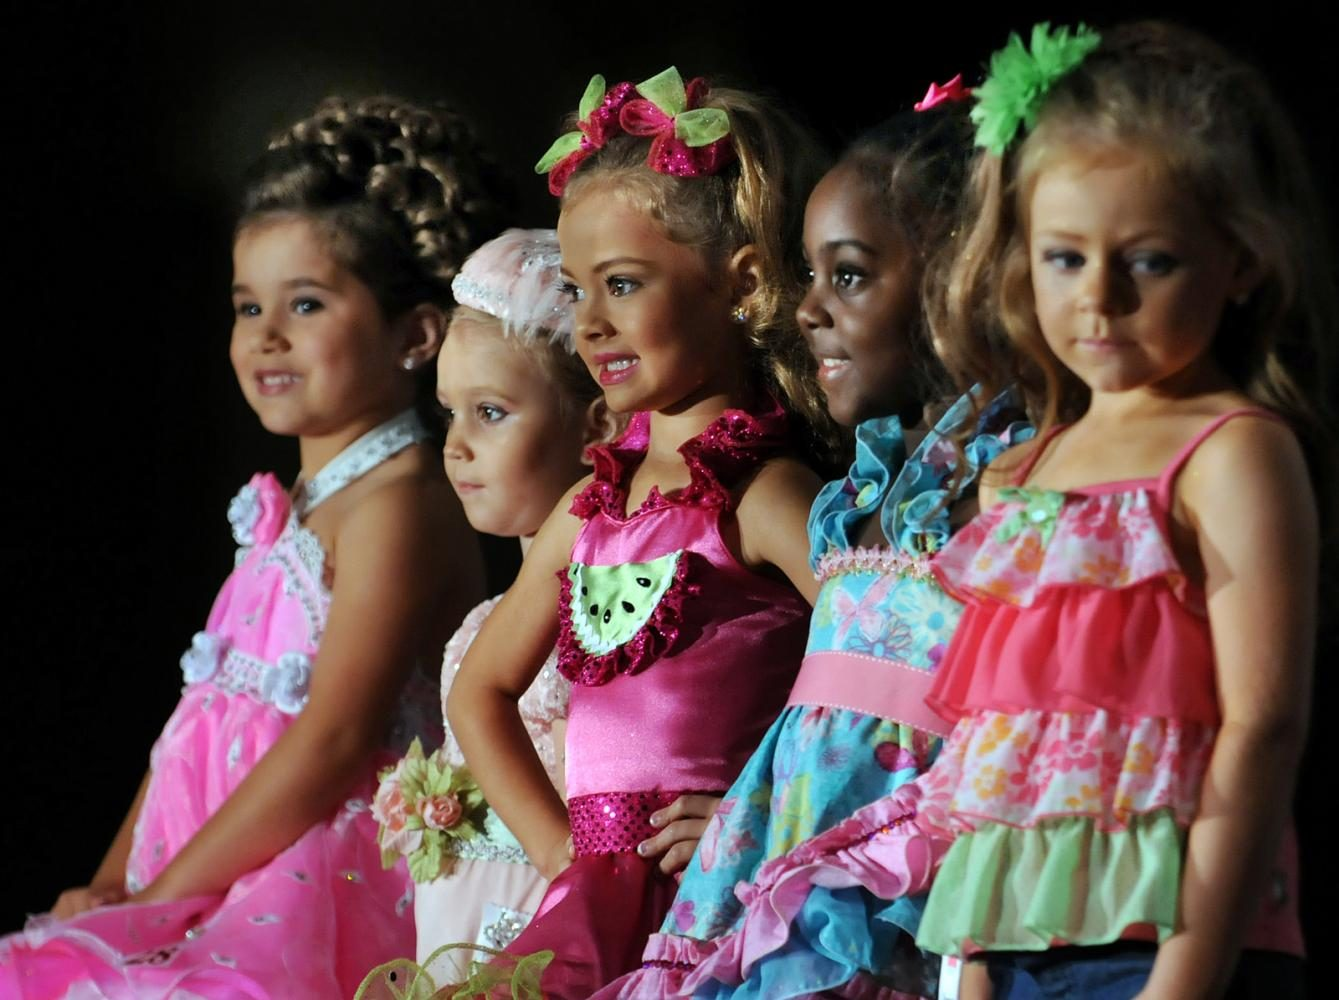 Are+Beauty+Pageants+Doing+More+Good+Than+Harm